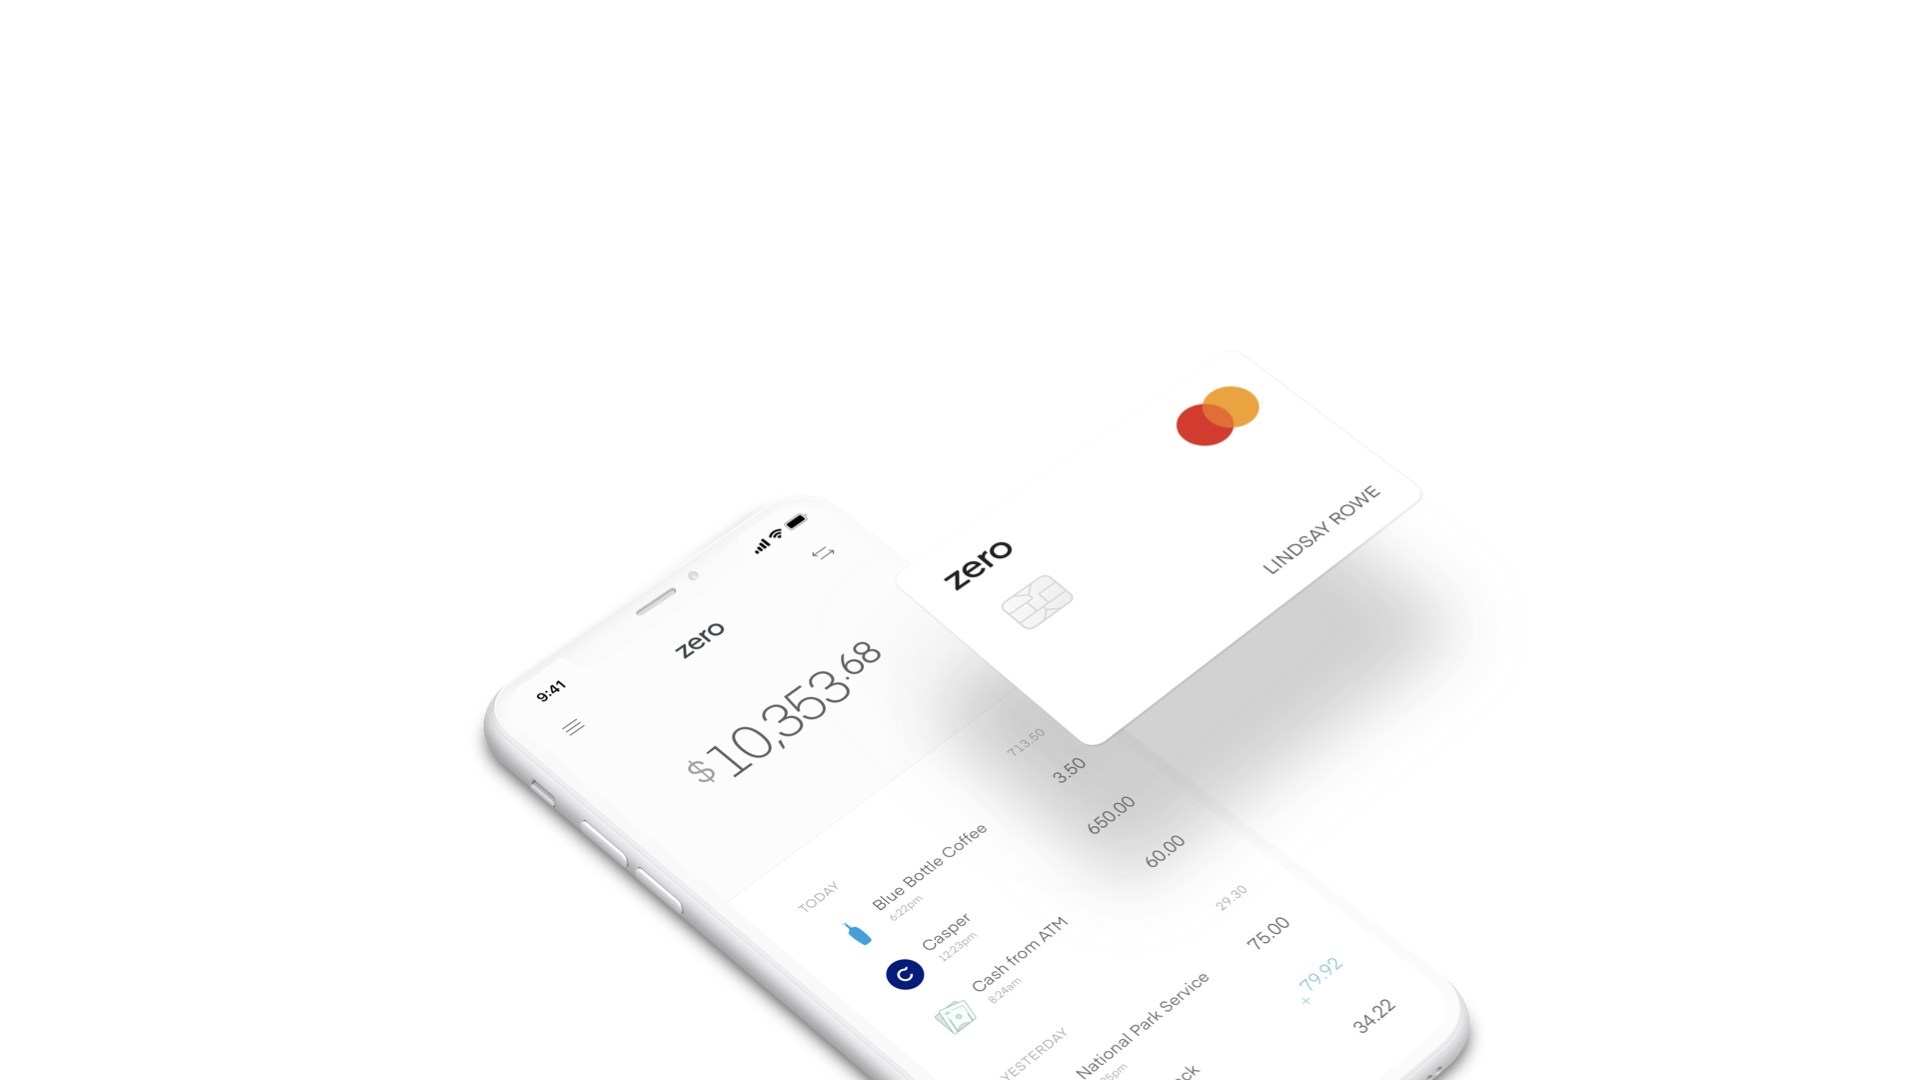 Zero Financial raises $20M to scale mobile banking | Mobile Payments